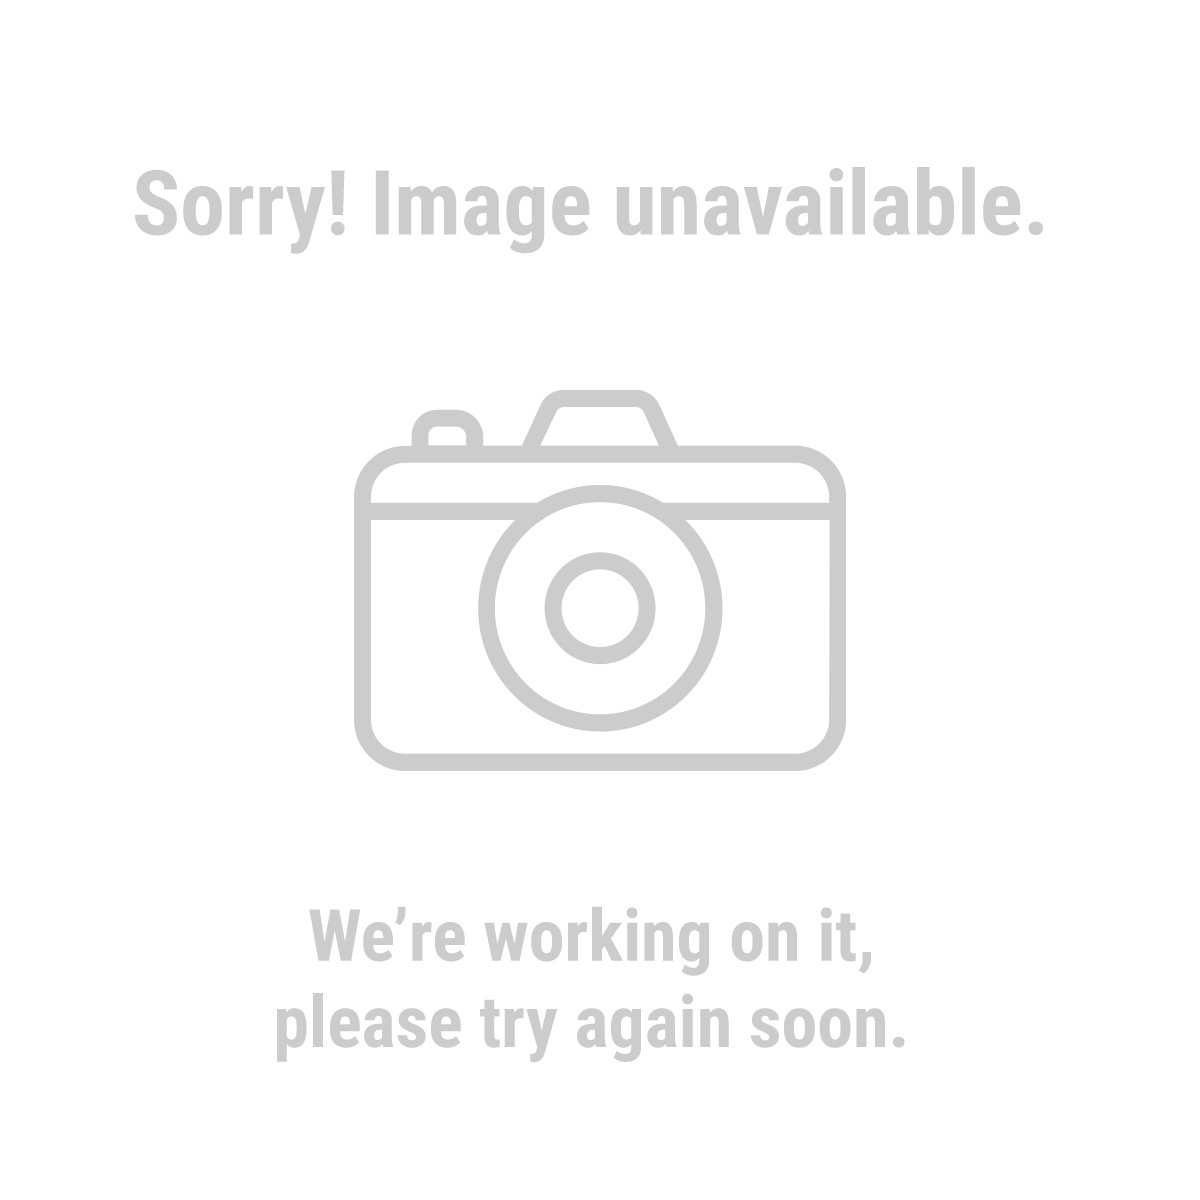 Road Shock 98390 Amber Rectangular Stick-On Reflectors, 2 Pack